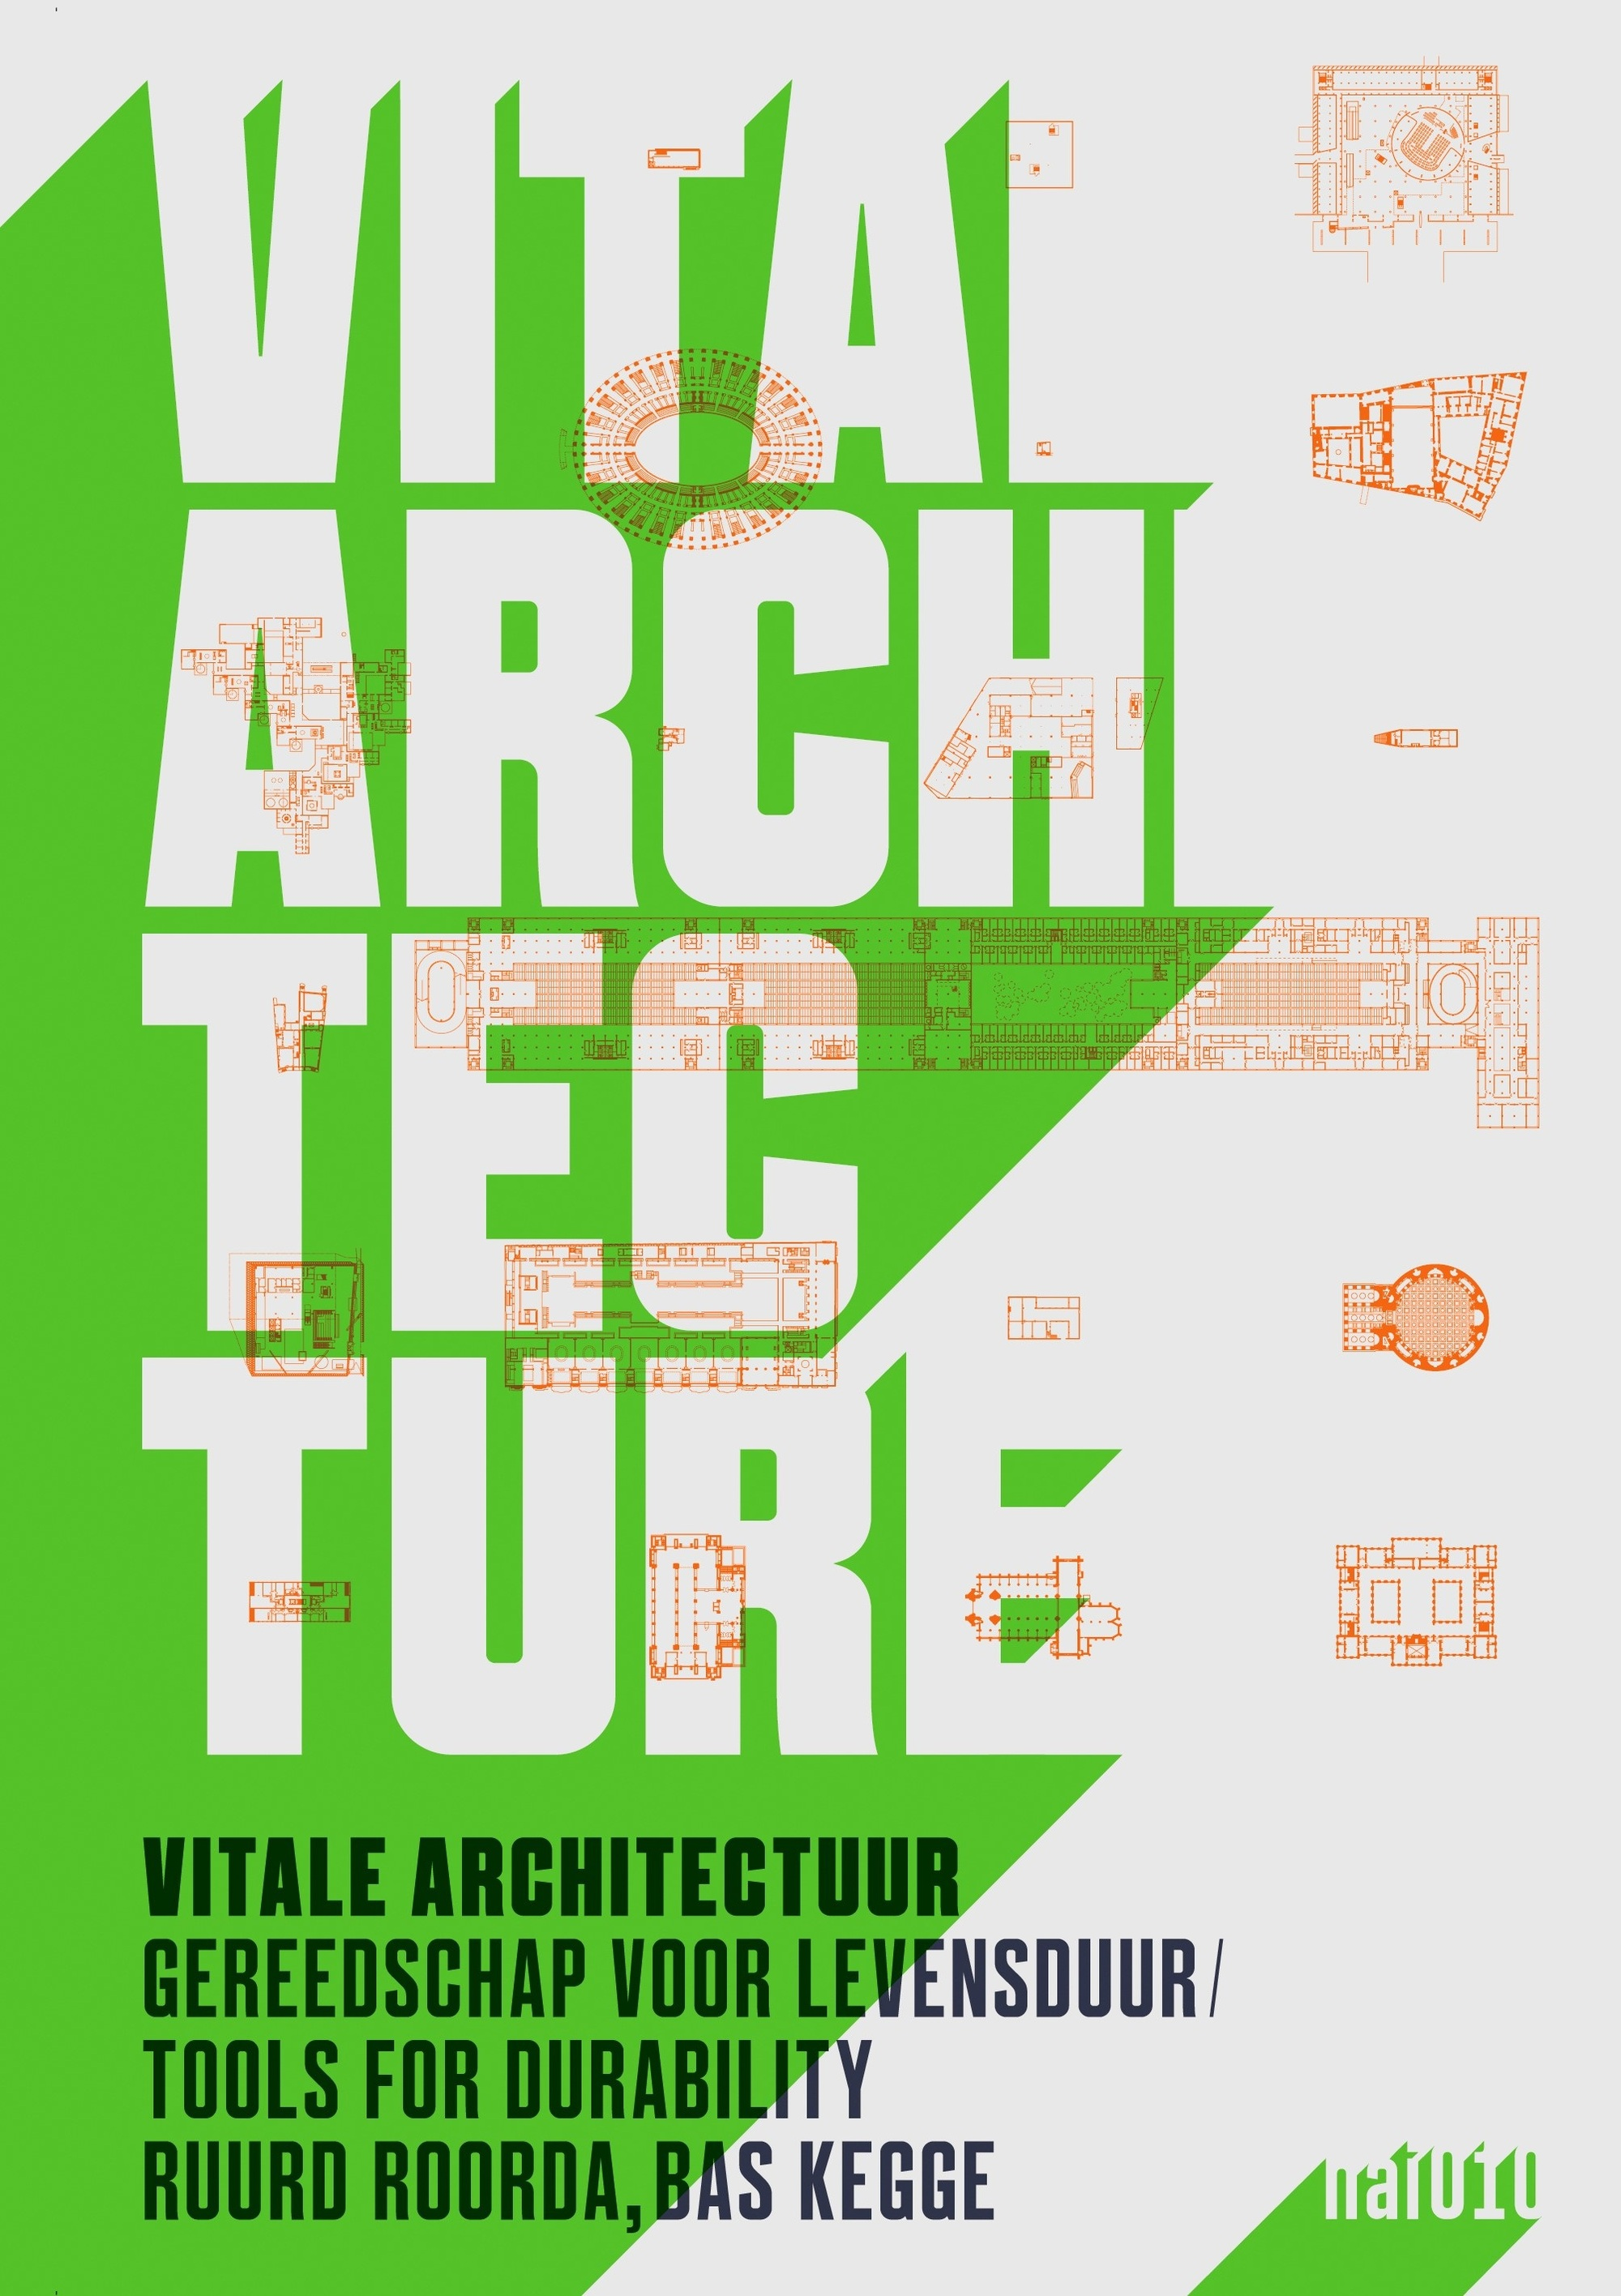 https://www archdaily com/869583/vital-architecture-tools-for